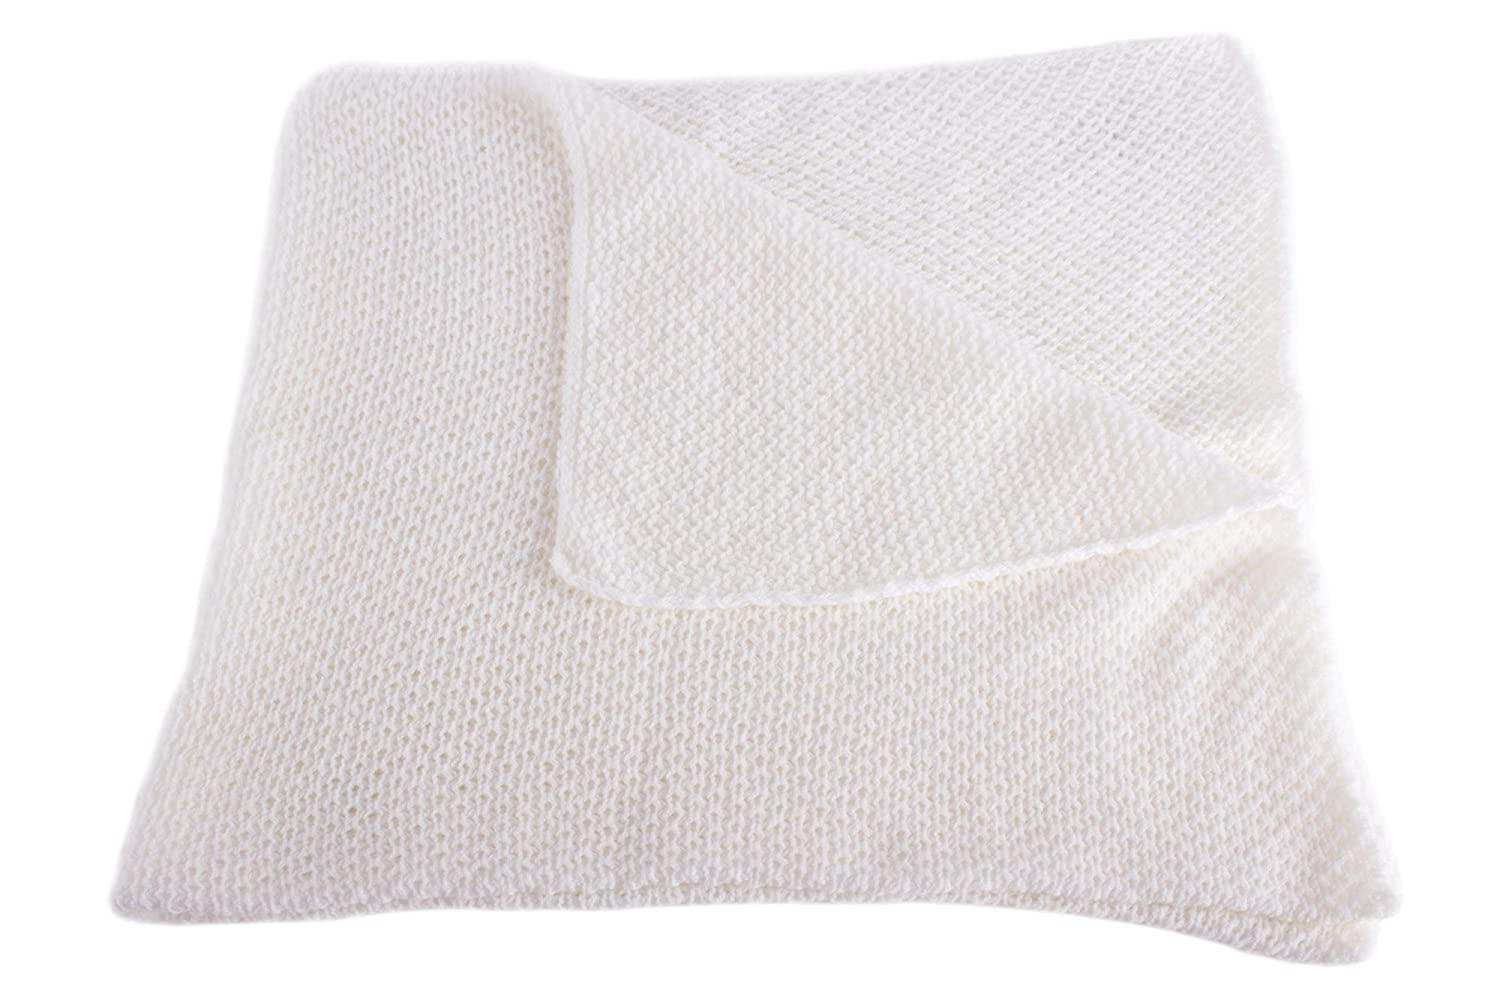 Unisex Super Soft 100% Cashmere Baby Blanket - 'White' - hand made in Scotland by Love Cashmere by Love Cashmere   B00TIITX4Y